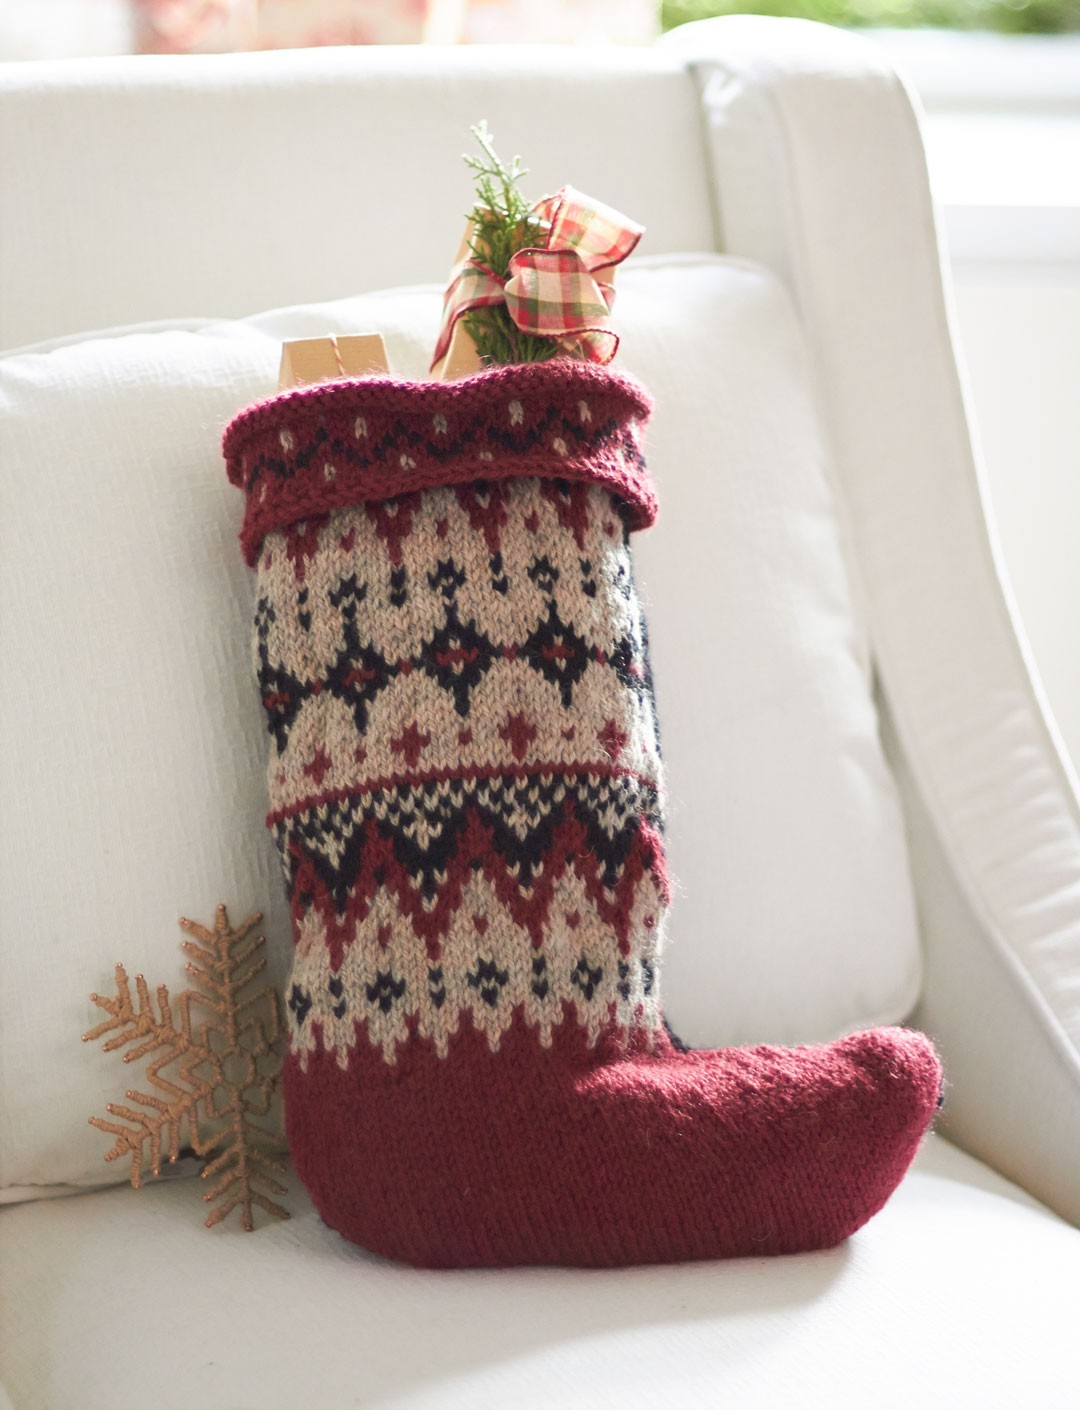 Fair Isle Knitting Kits Canada : Patons fair isle stocking knit pattern yarnspirations